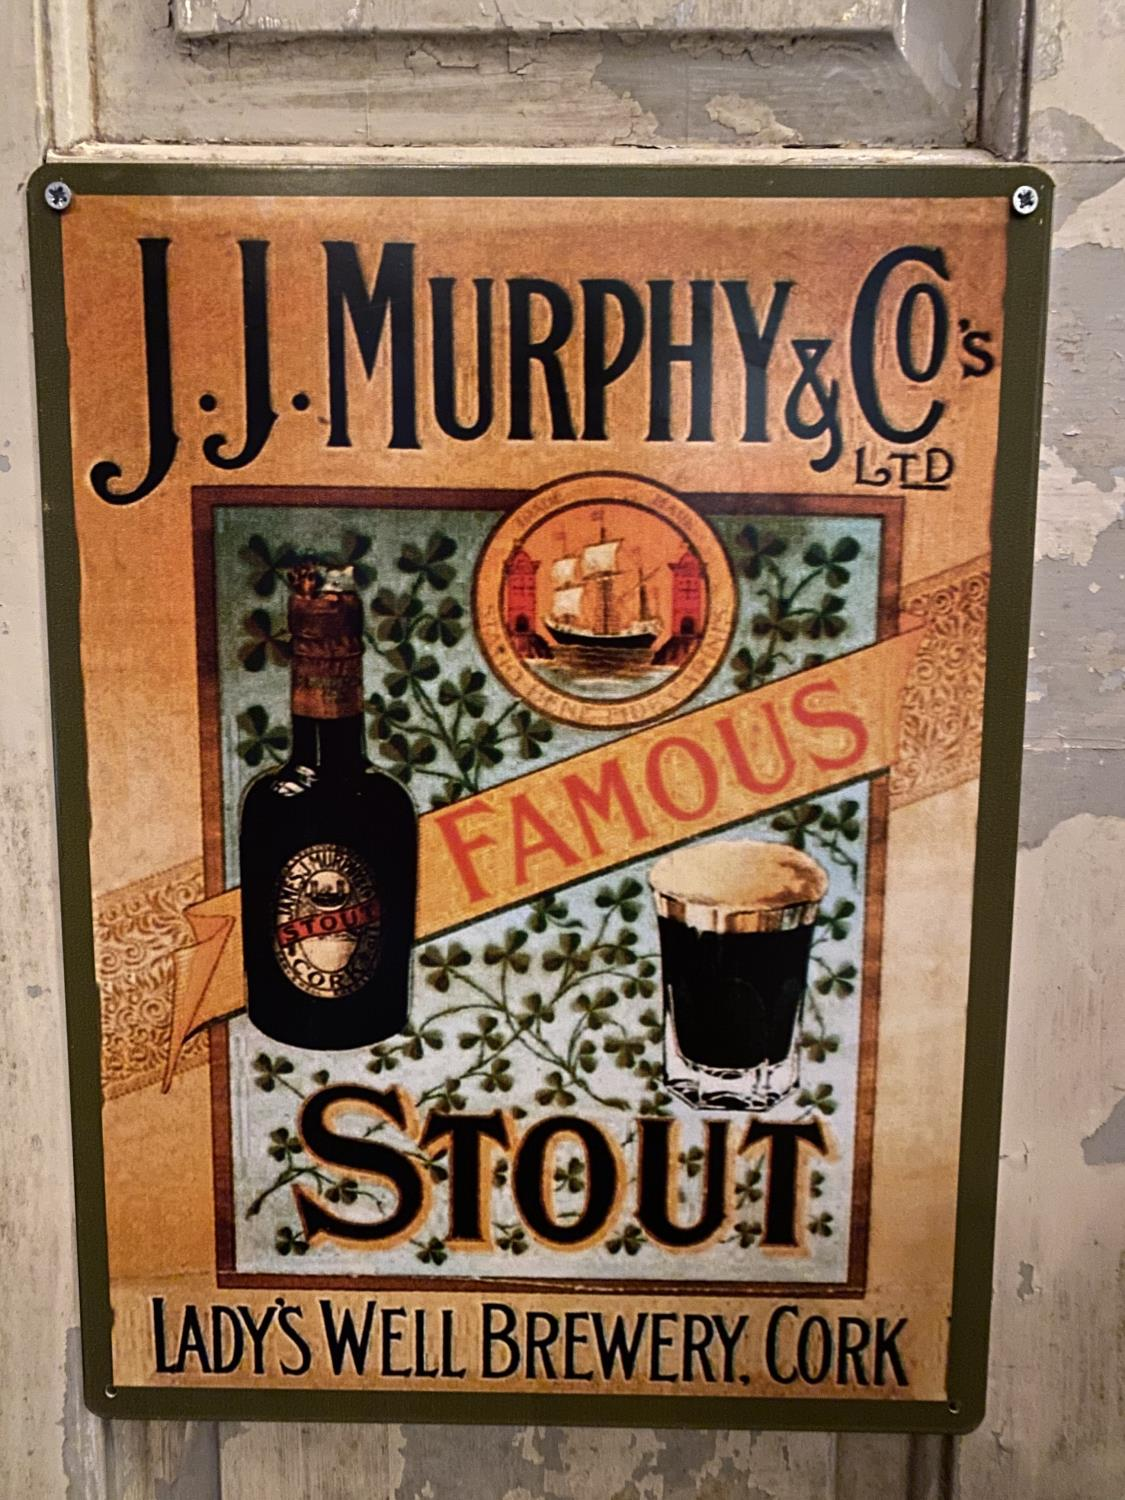 Tin plate J.J. Murphy & Co's advertising sign.